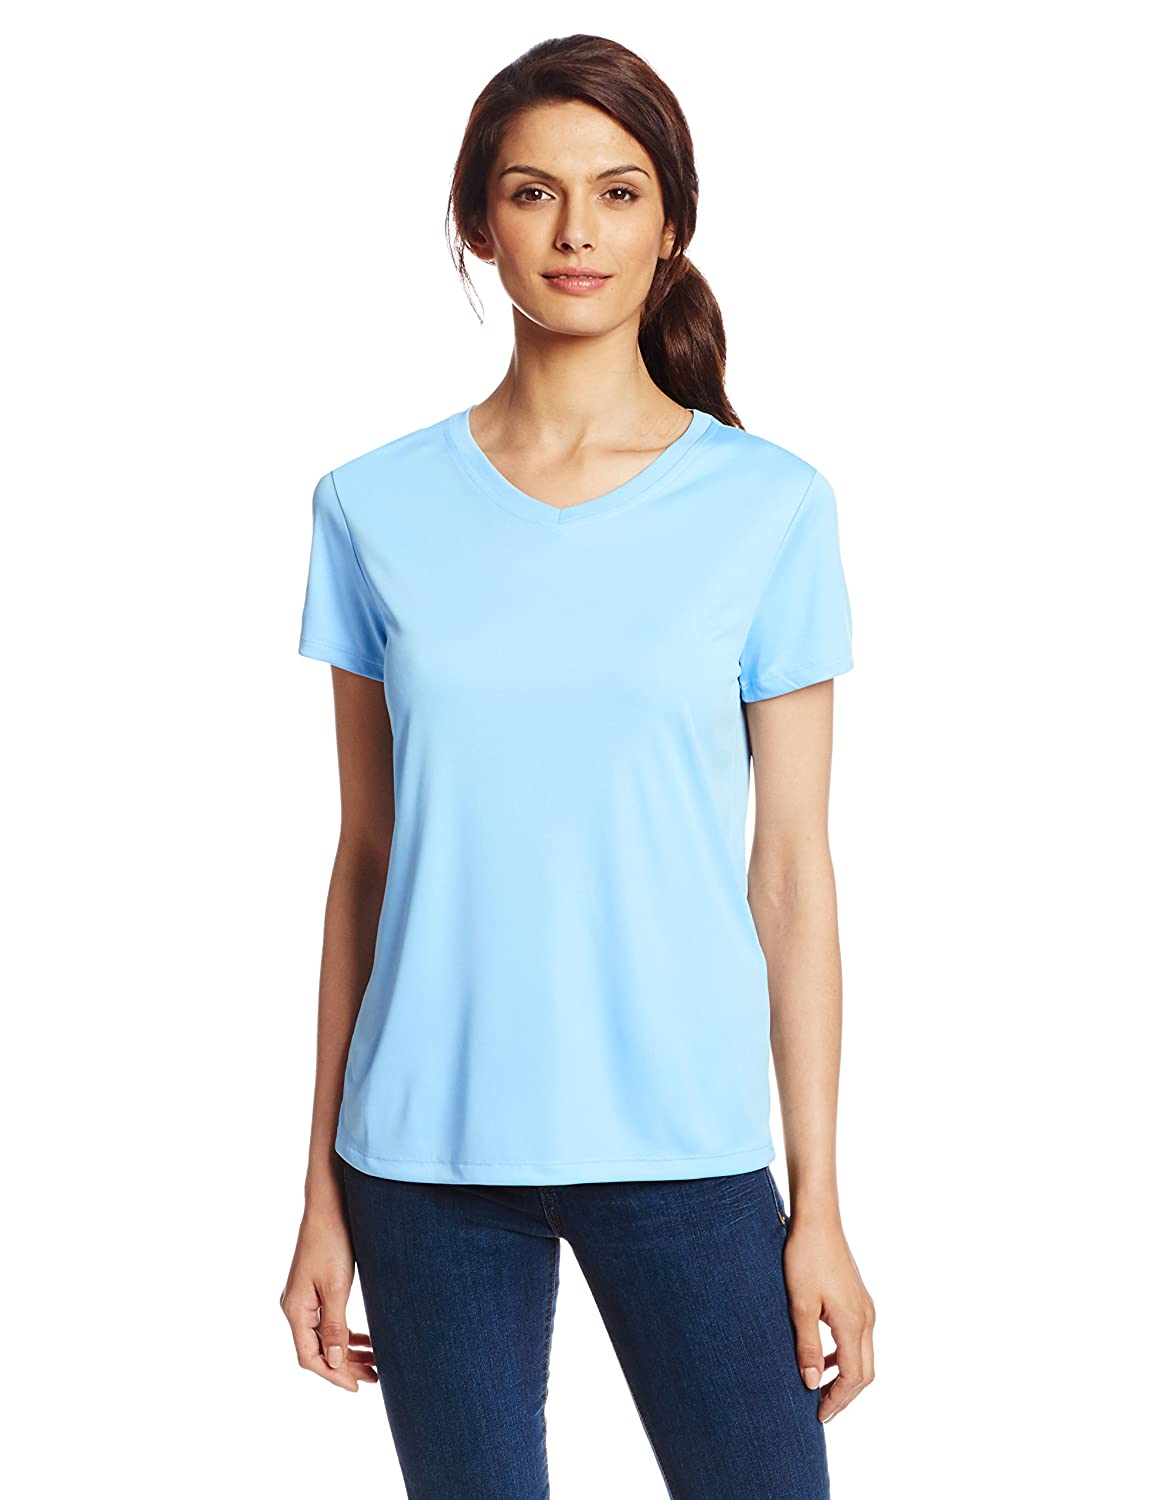 Hanes Sport Women's Cool DRI Performance V-Neck Tee Hanes Women' s Activewear O483V